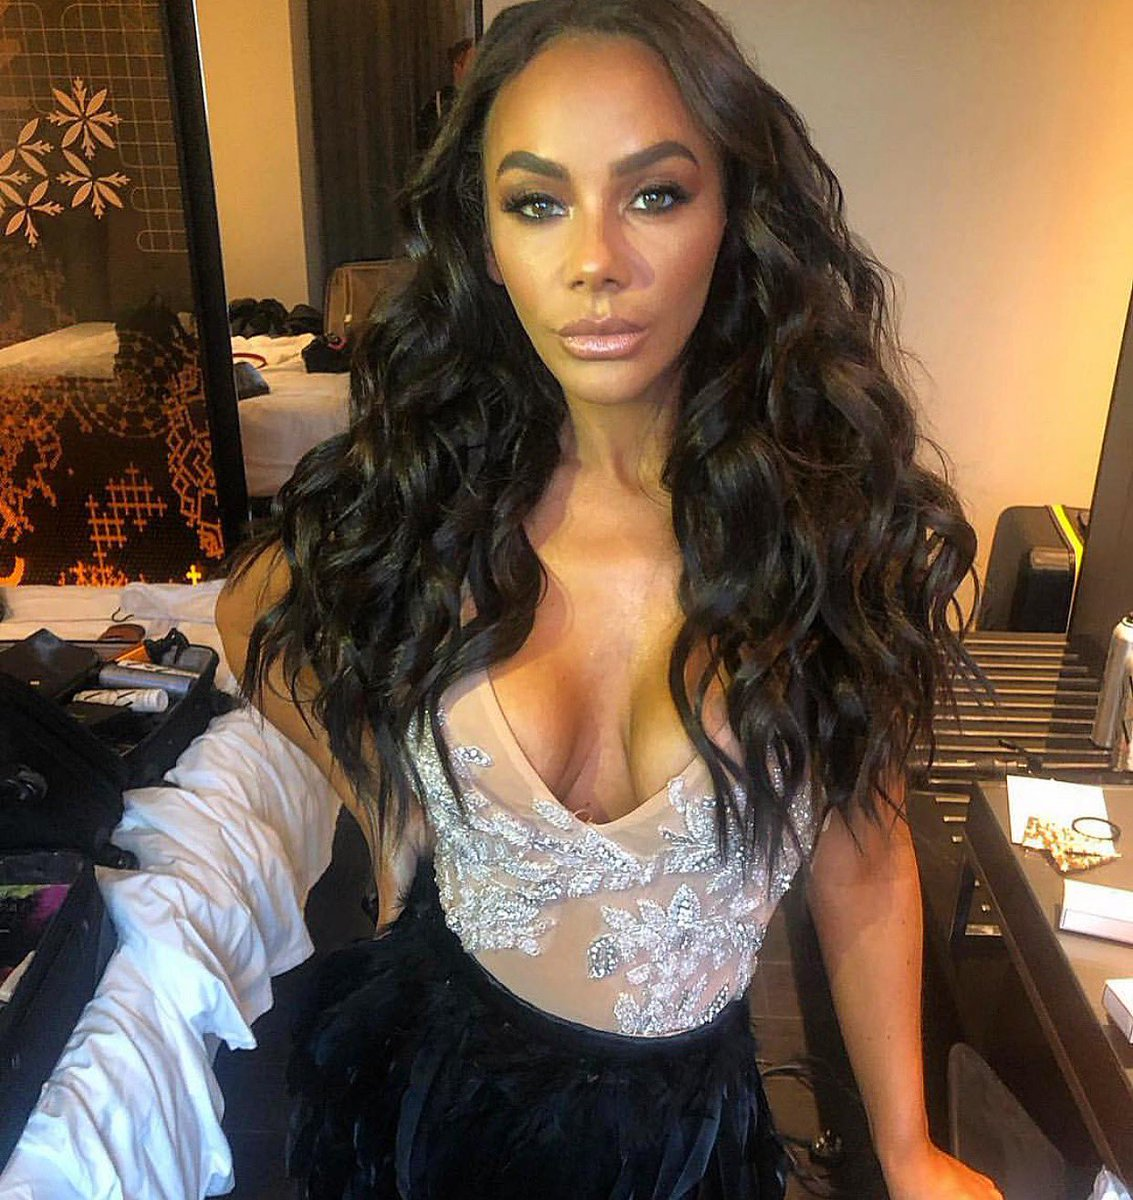 Pussy Snapchat Chelsee Healey naked photo 2017